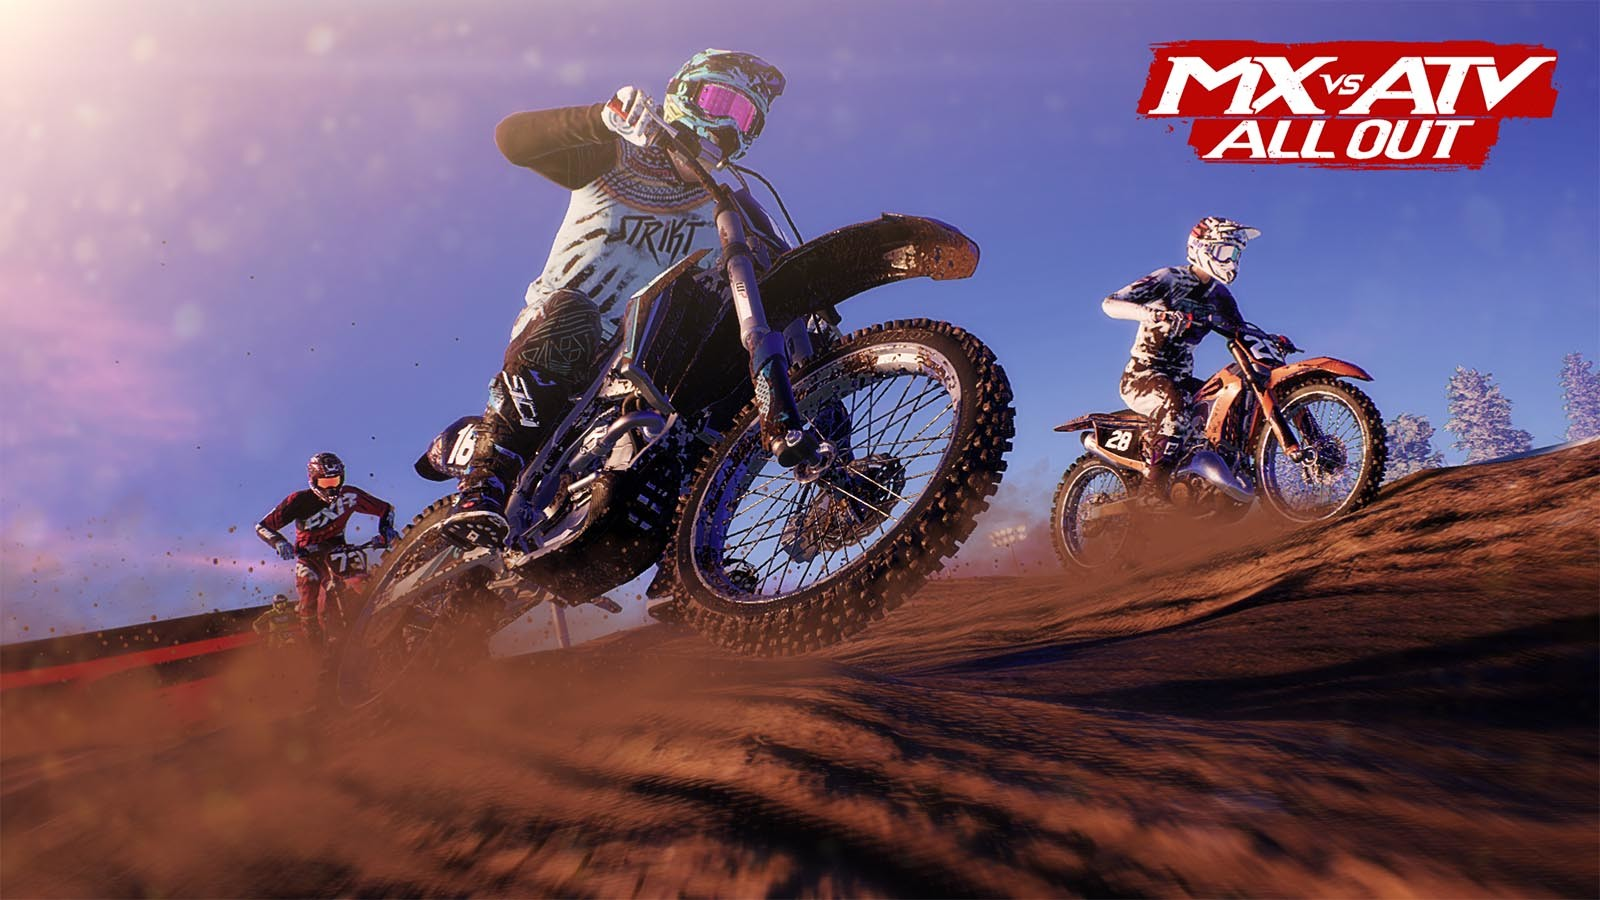 2020 AMA Pro Motocross Championship ... - MX vs ATV All Out